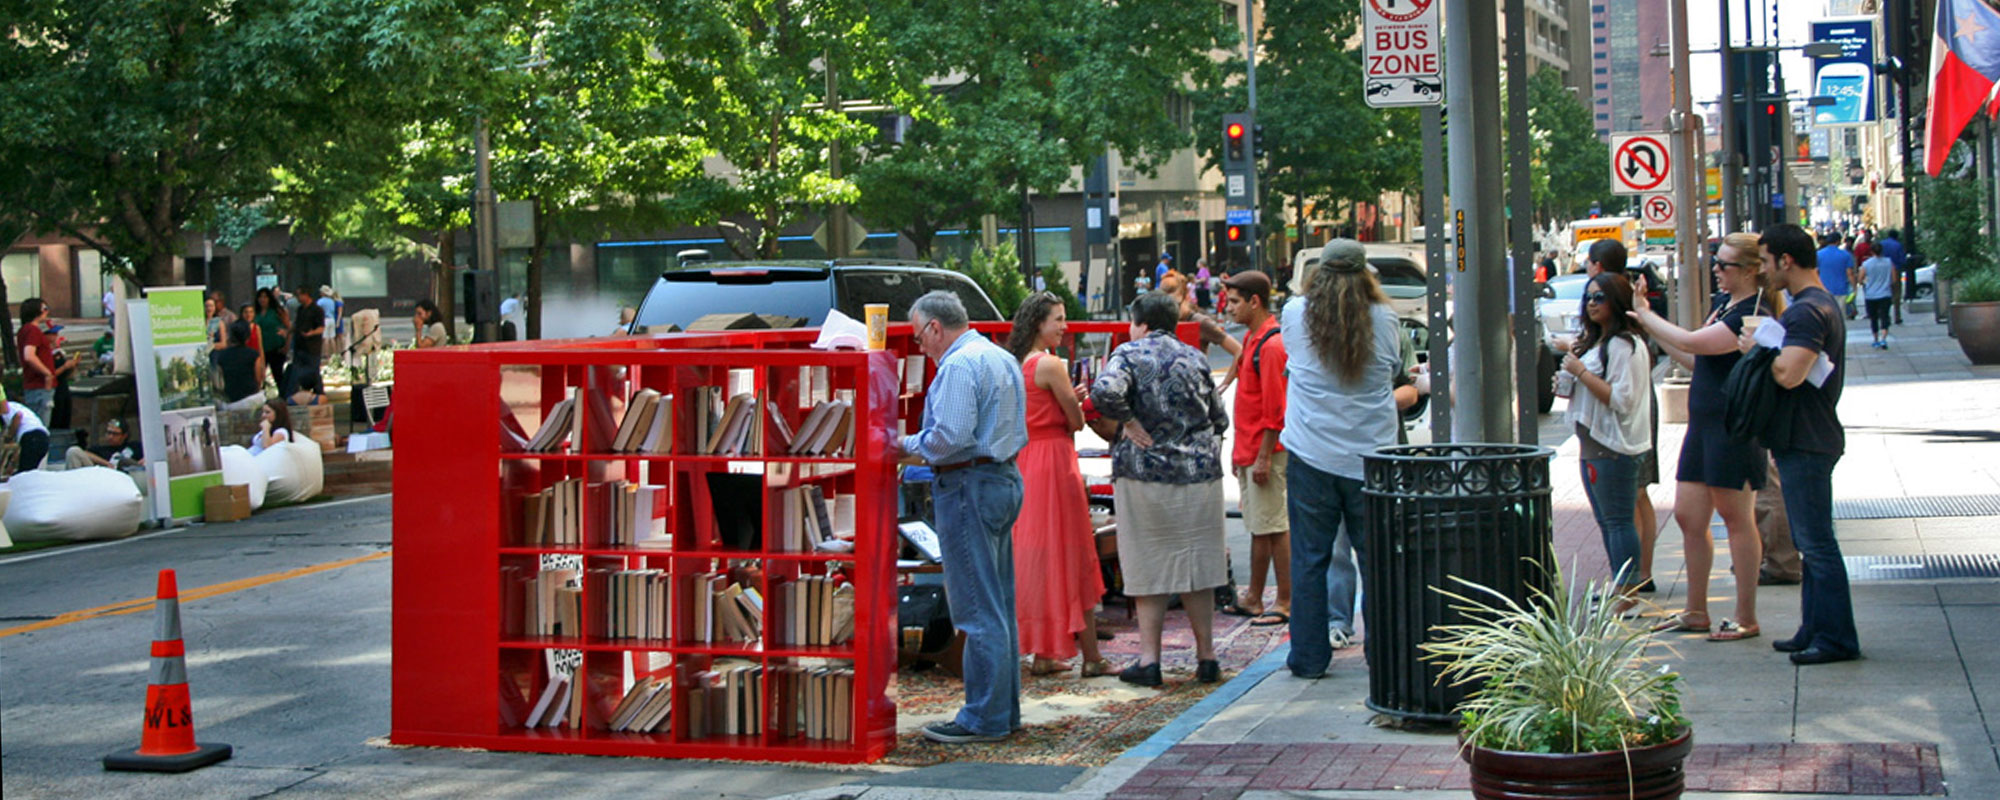 D Magazine created a public library in their parklet.